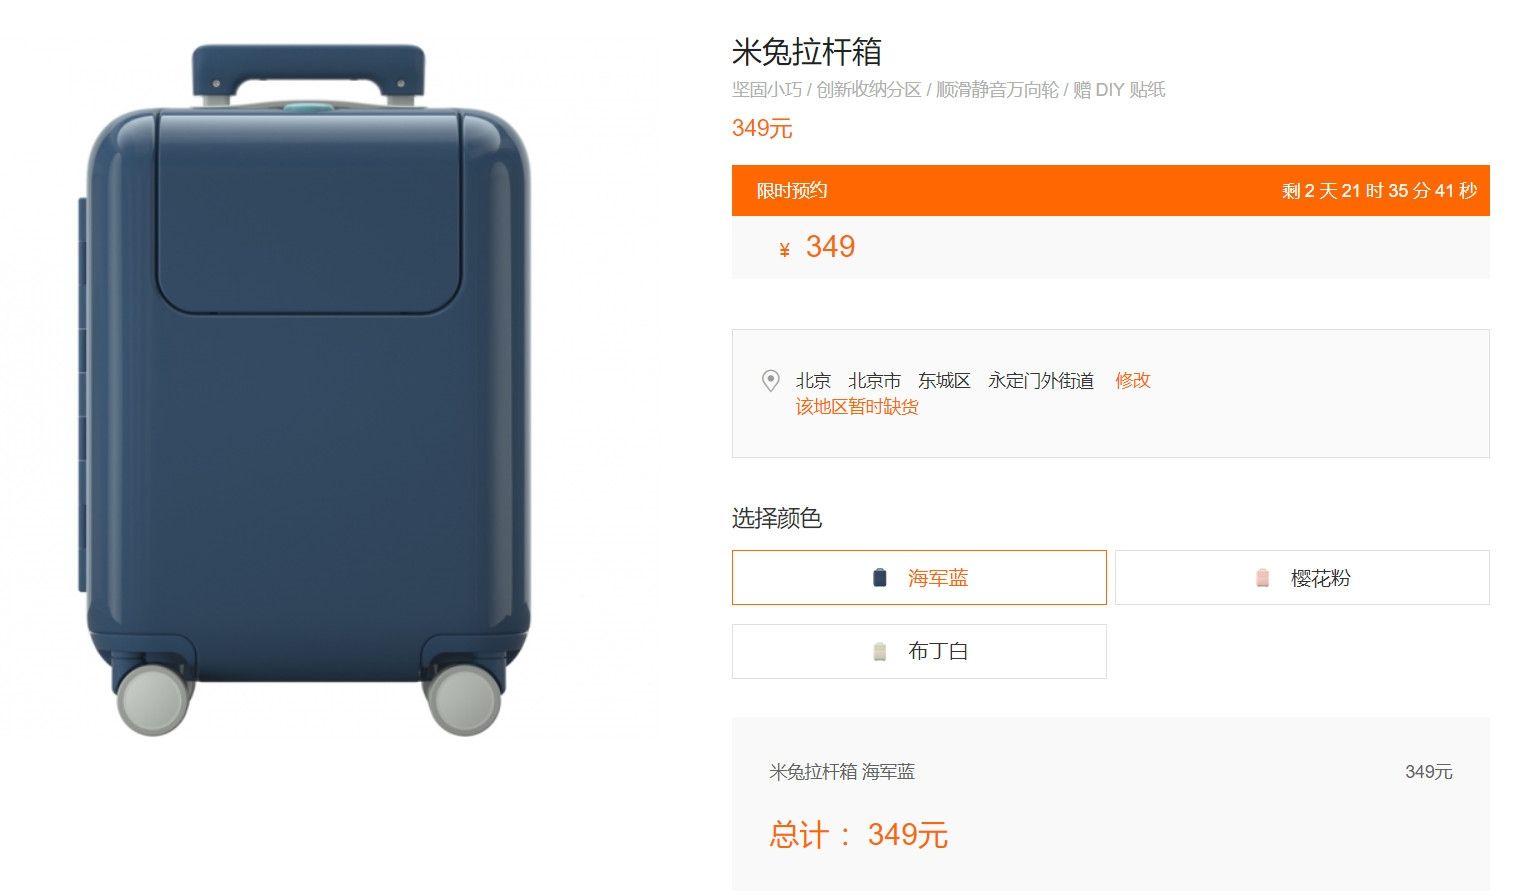 The new Xiaomi Mi Bunny Trolley child's suitcase was launched with a price of 349 yuan